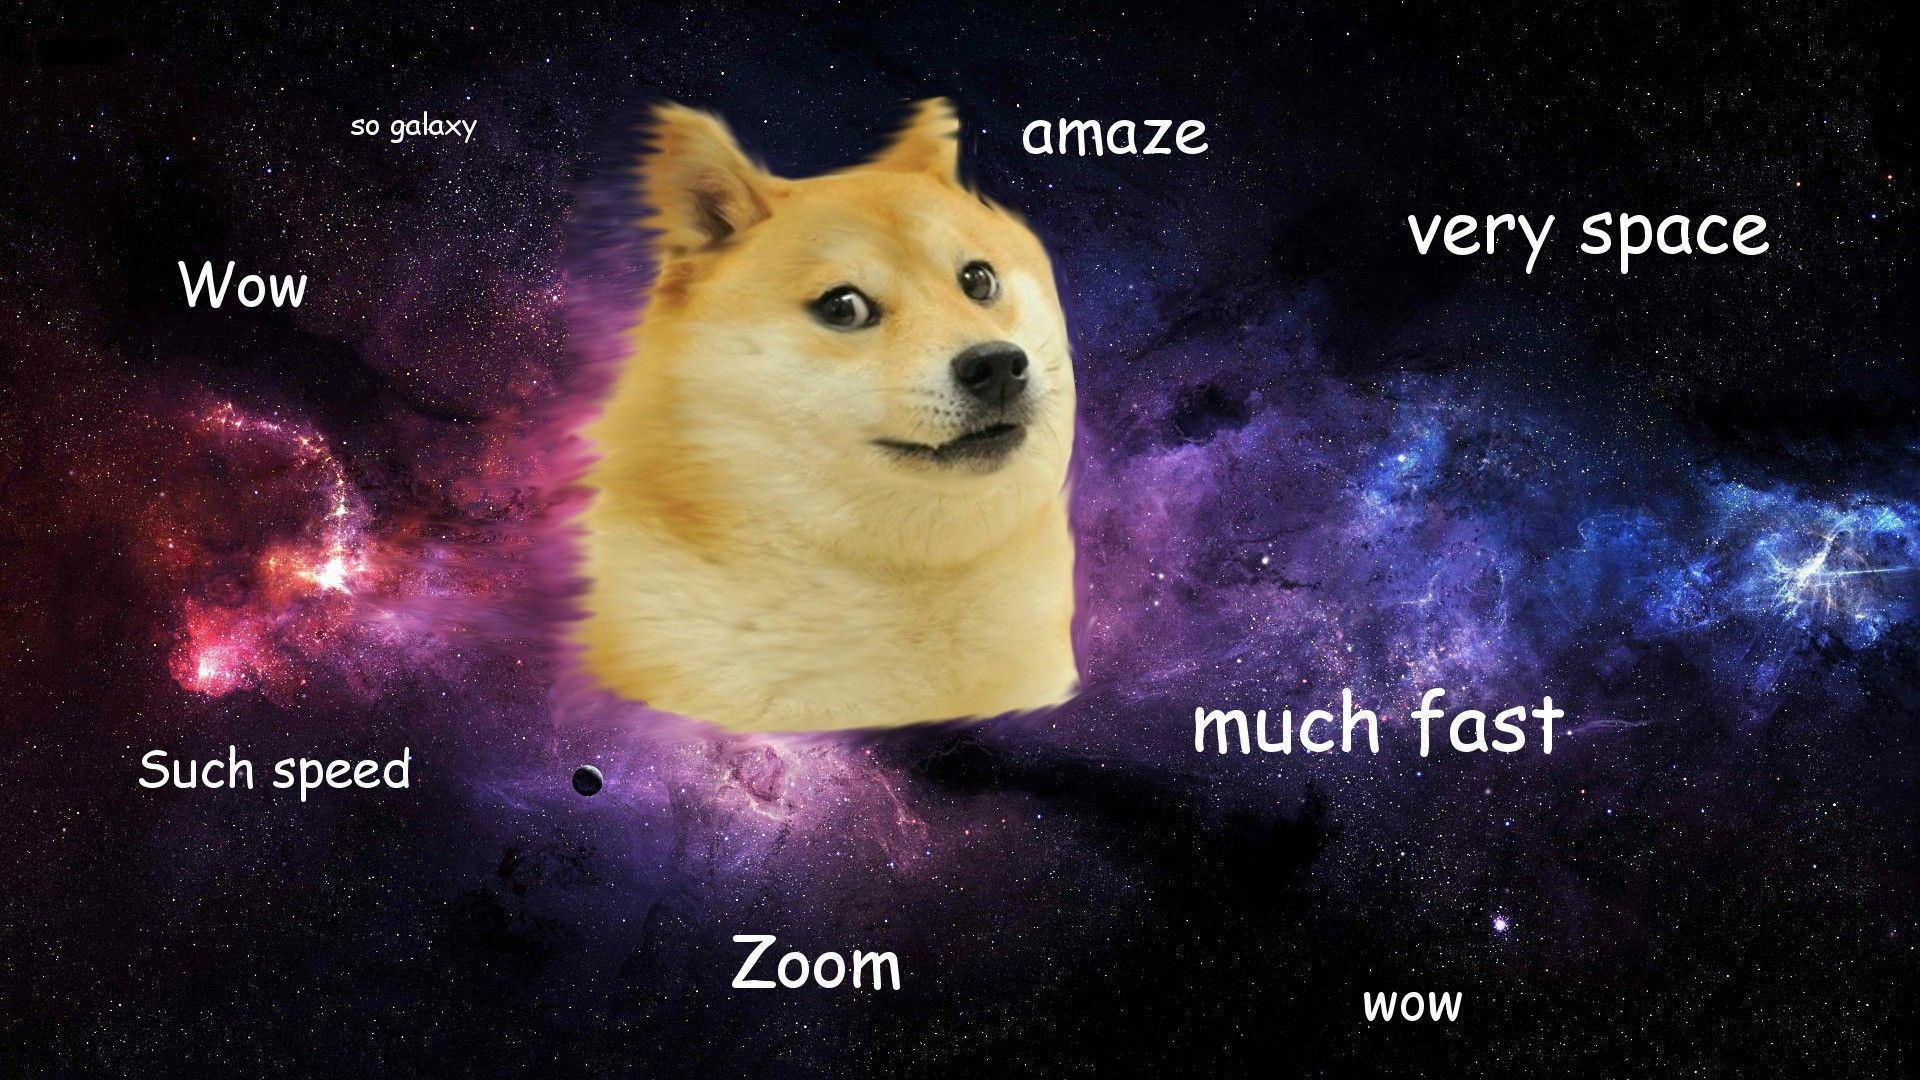 Doge Wallpaper X Doge Meme Funny Animal Memes Doge